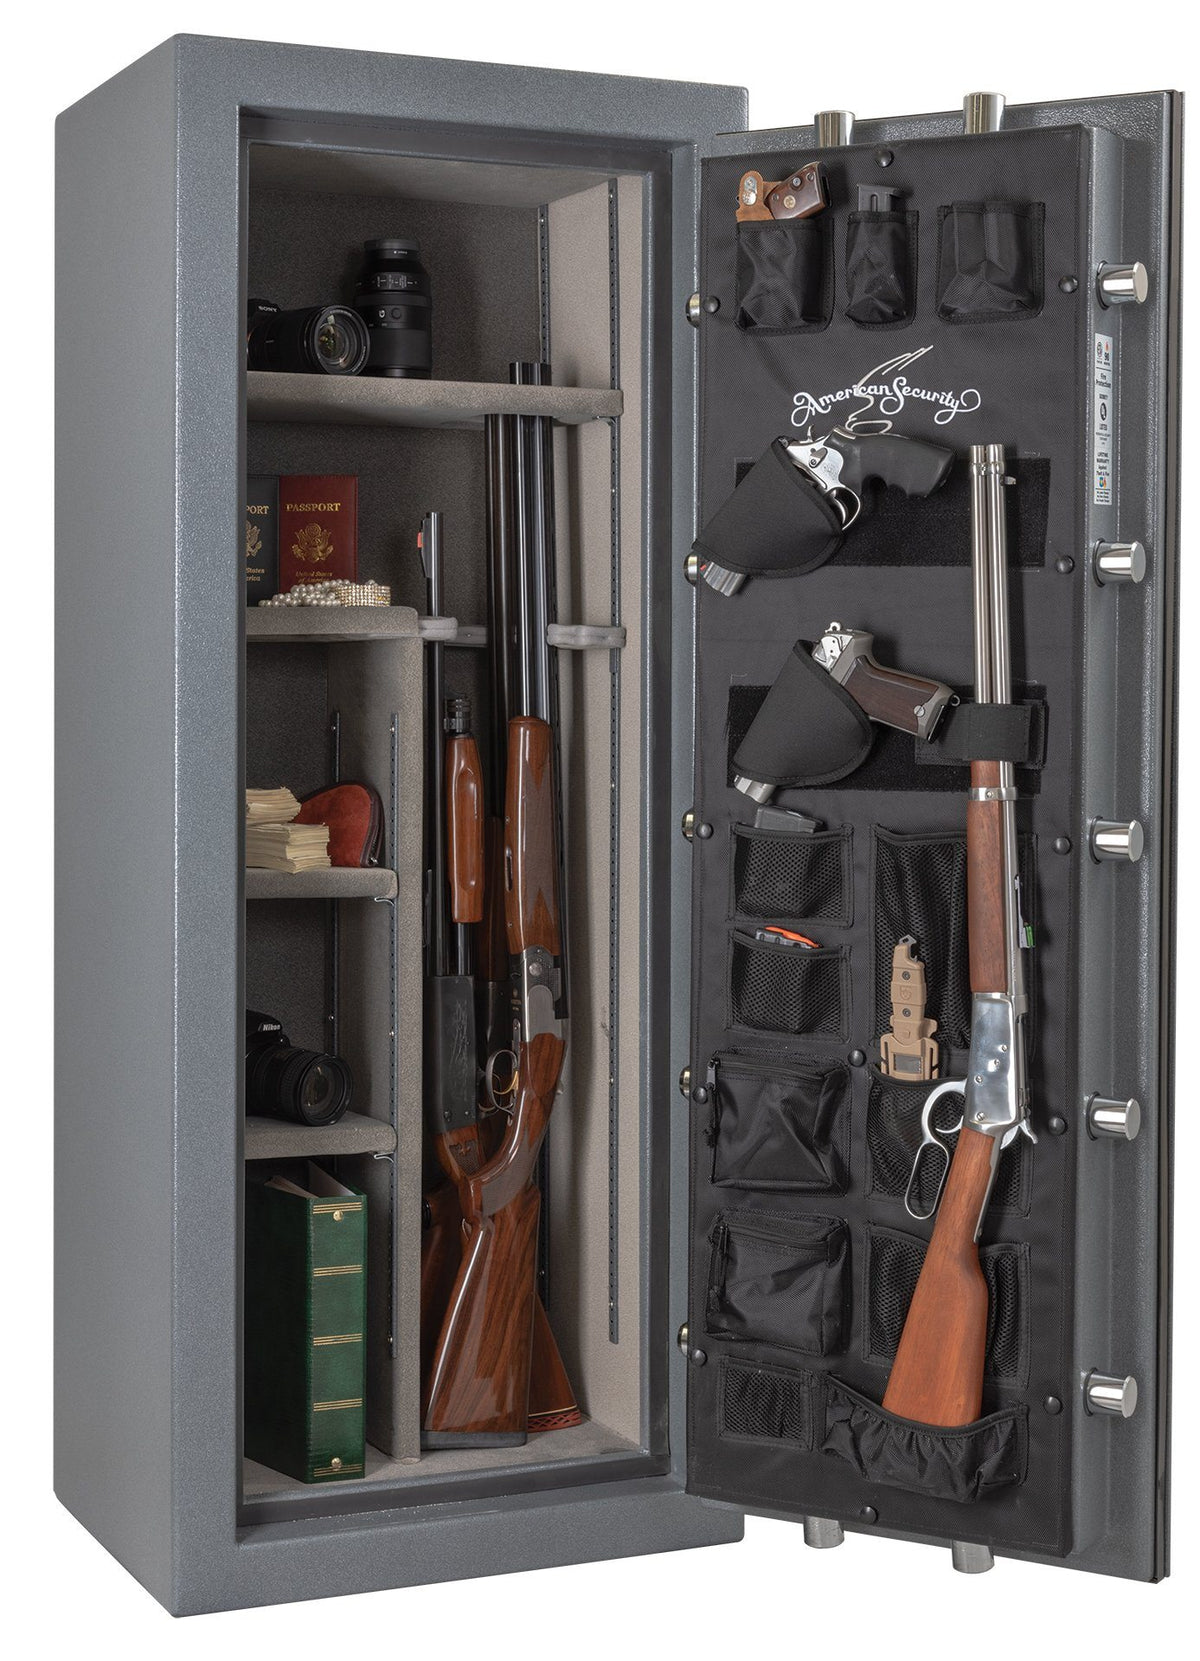 AMSEC NF5924E5 Rifle & Gun Safe with ESL5 Electronic Lock - Door Open Full